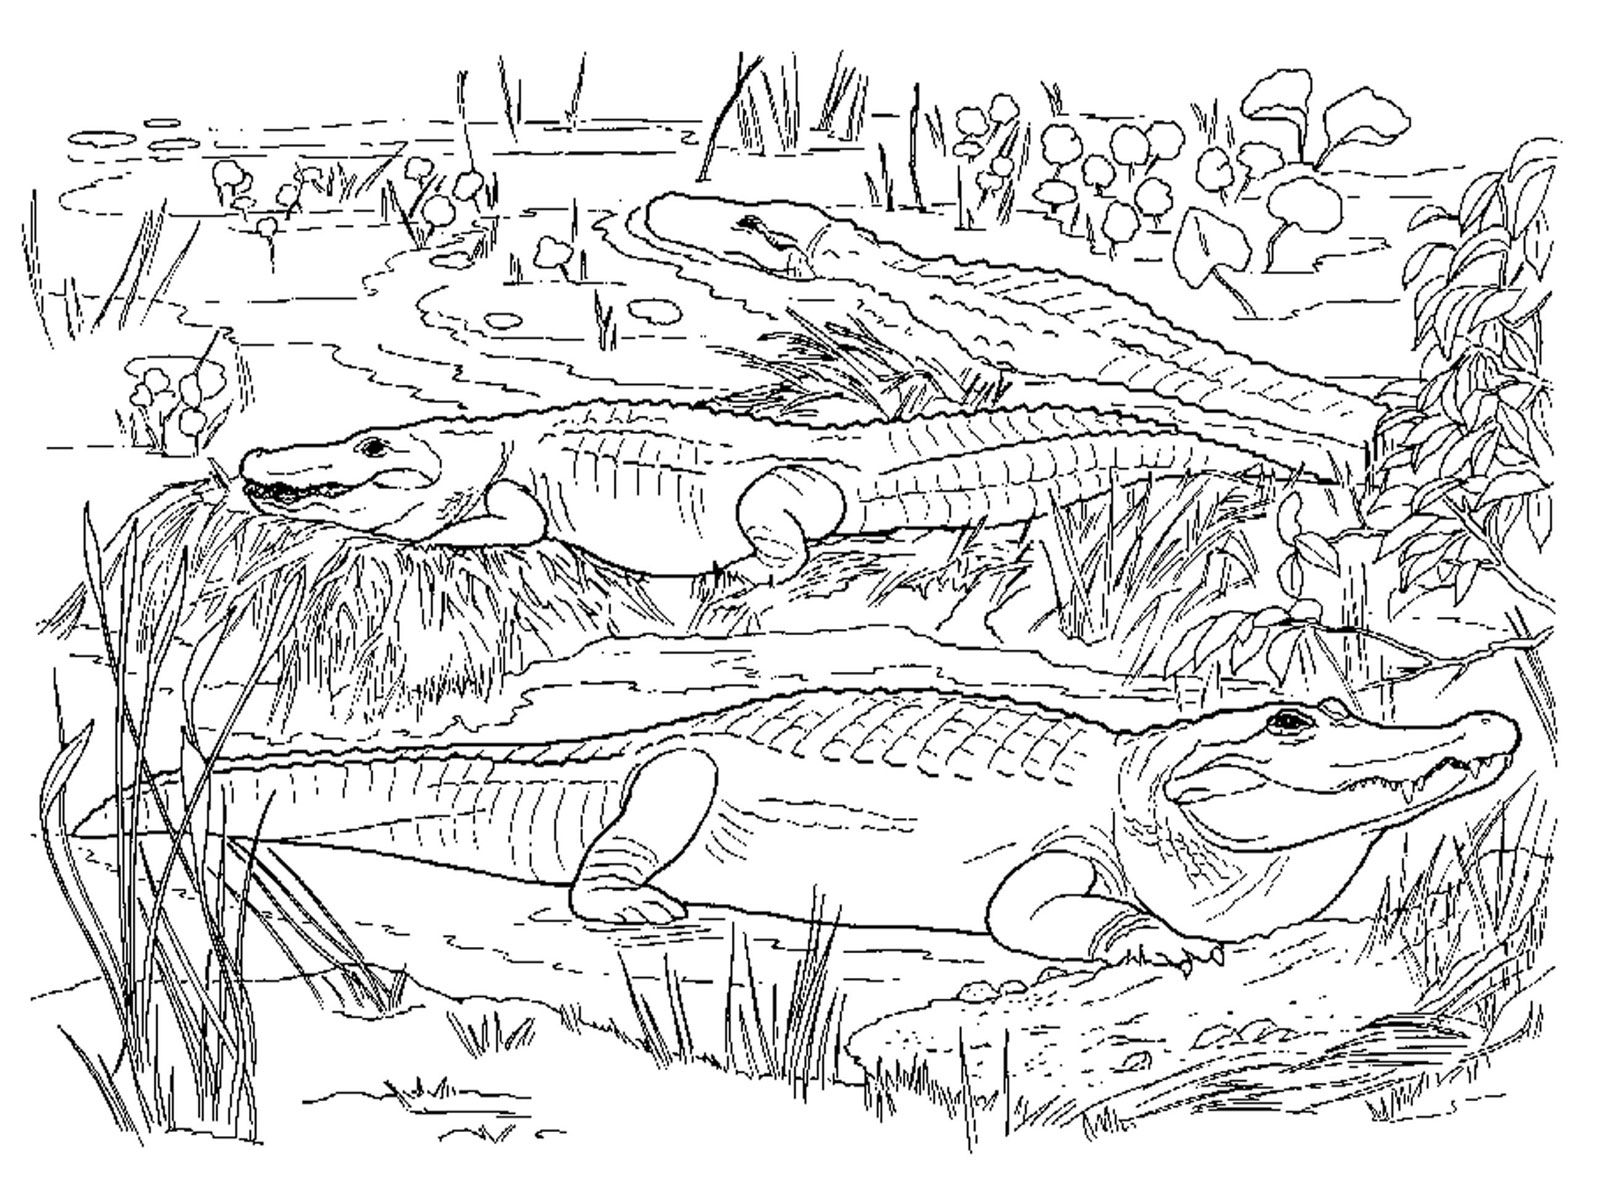 Printable 48 Realistic Animal Coloring Pages 3628 Realistic Animal Coloring Pages Animal Coloring Pages Coloring Pages For Kids Coloring Pages